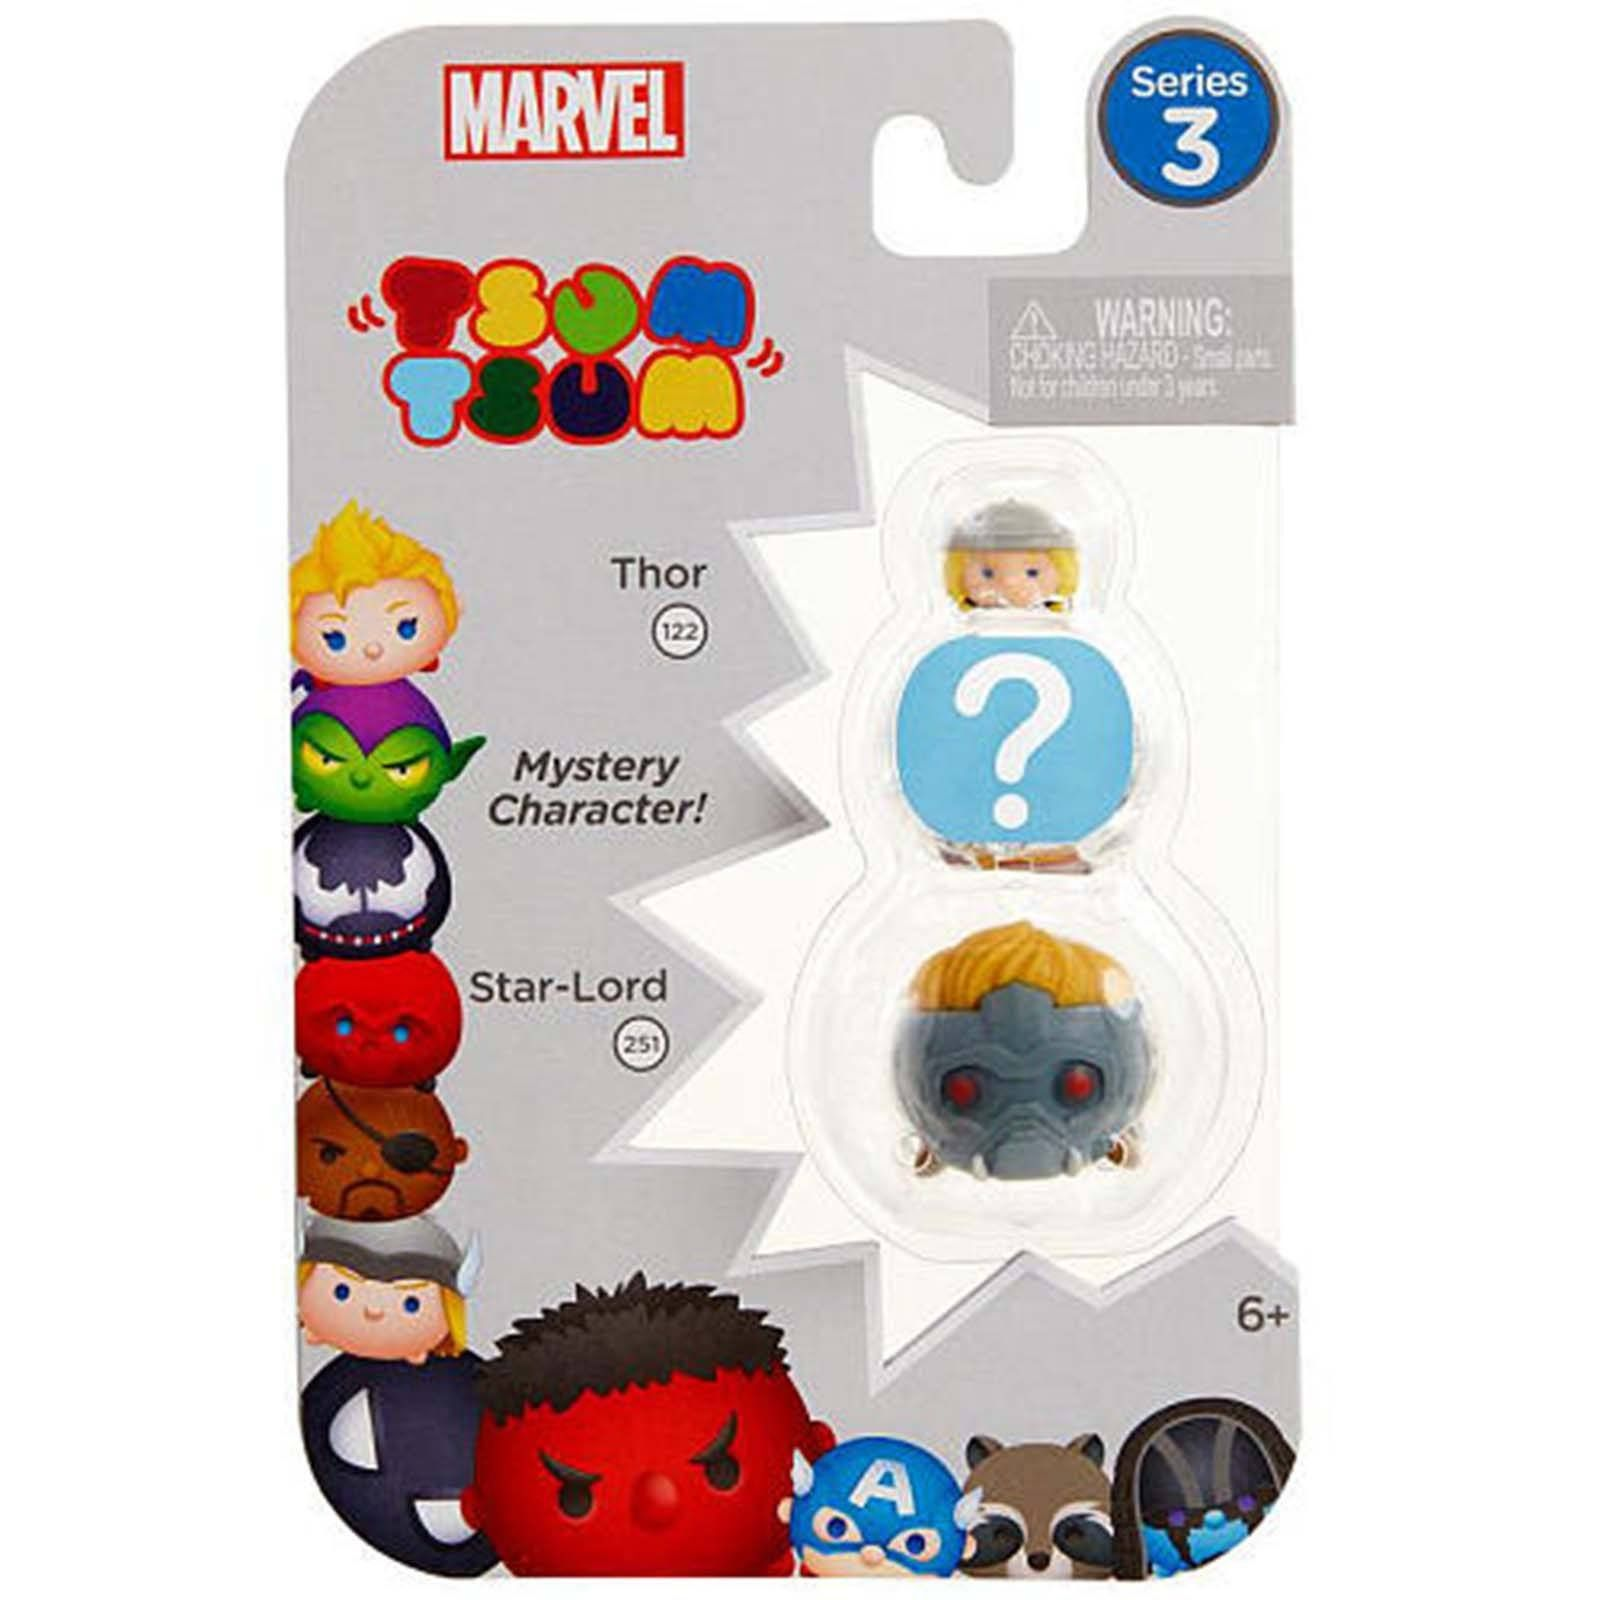 Disney Tsum Tsum Marvel Series 3 Thor Star-Lord Mystery NEW  mystery caracter